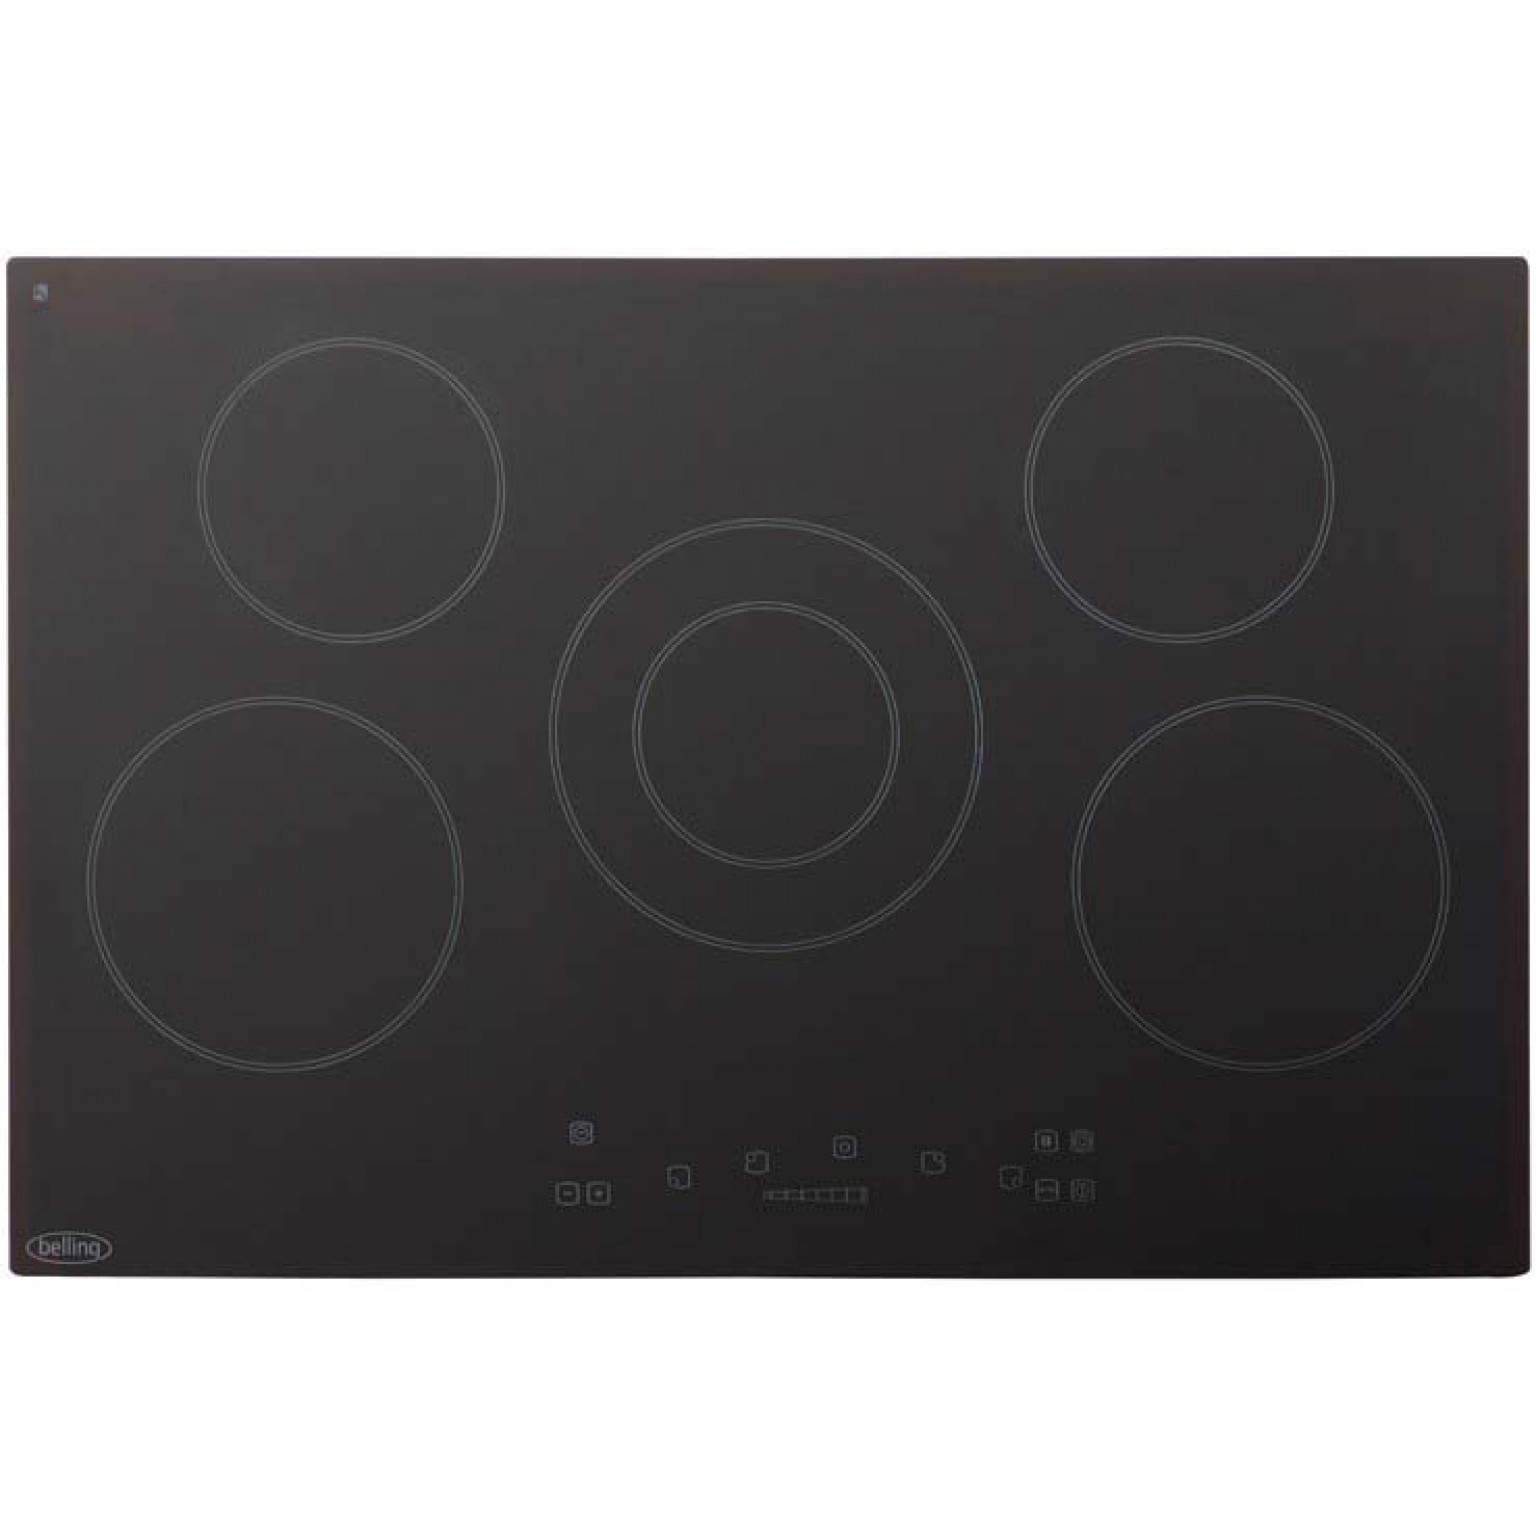 Belling 77cm 5 zone ceramic hob with touch controls CH77TC